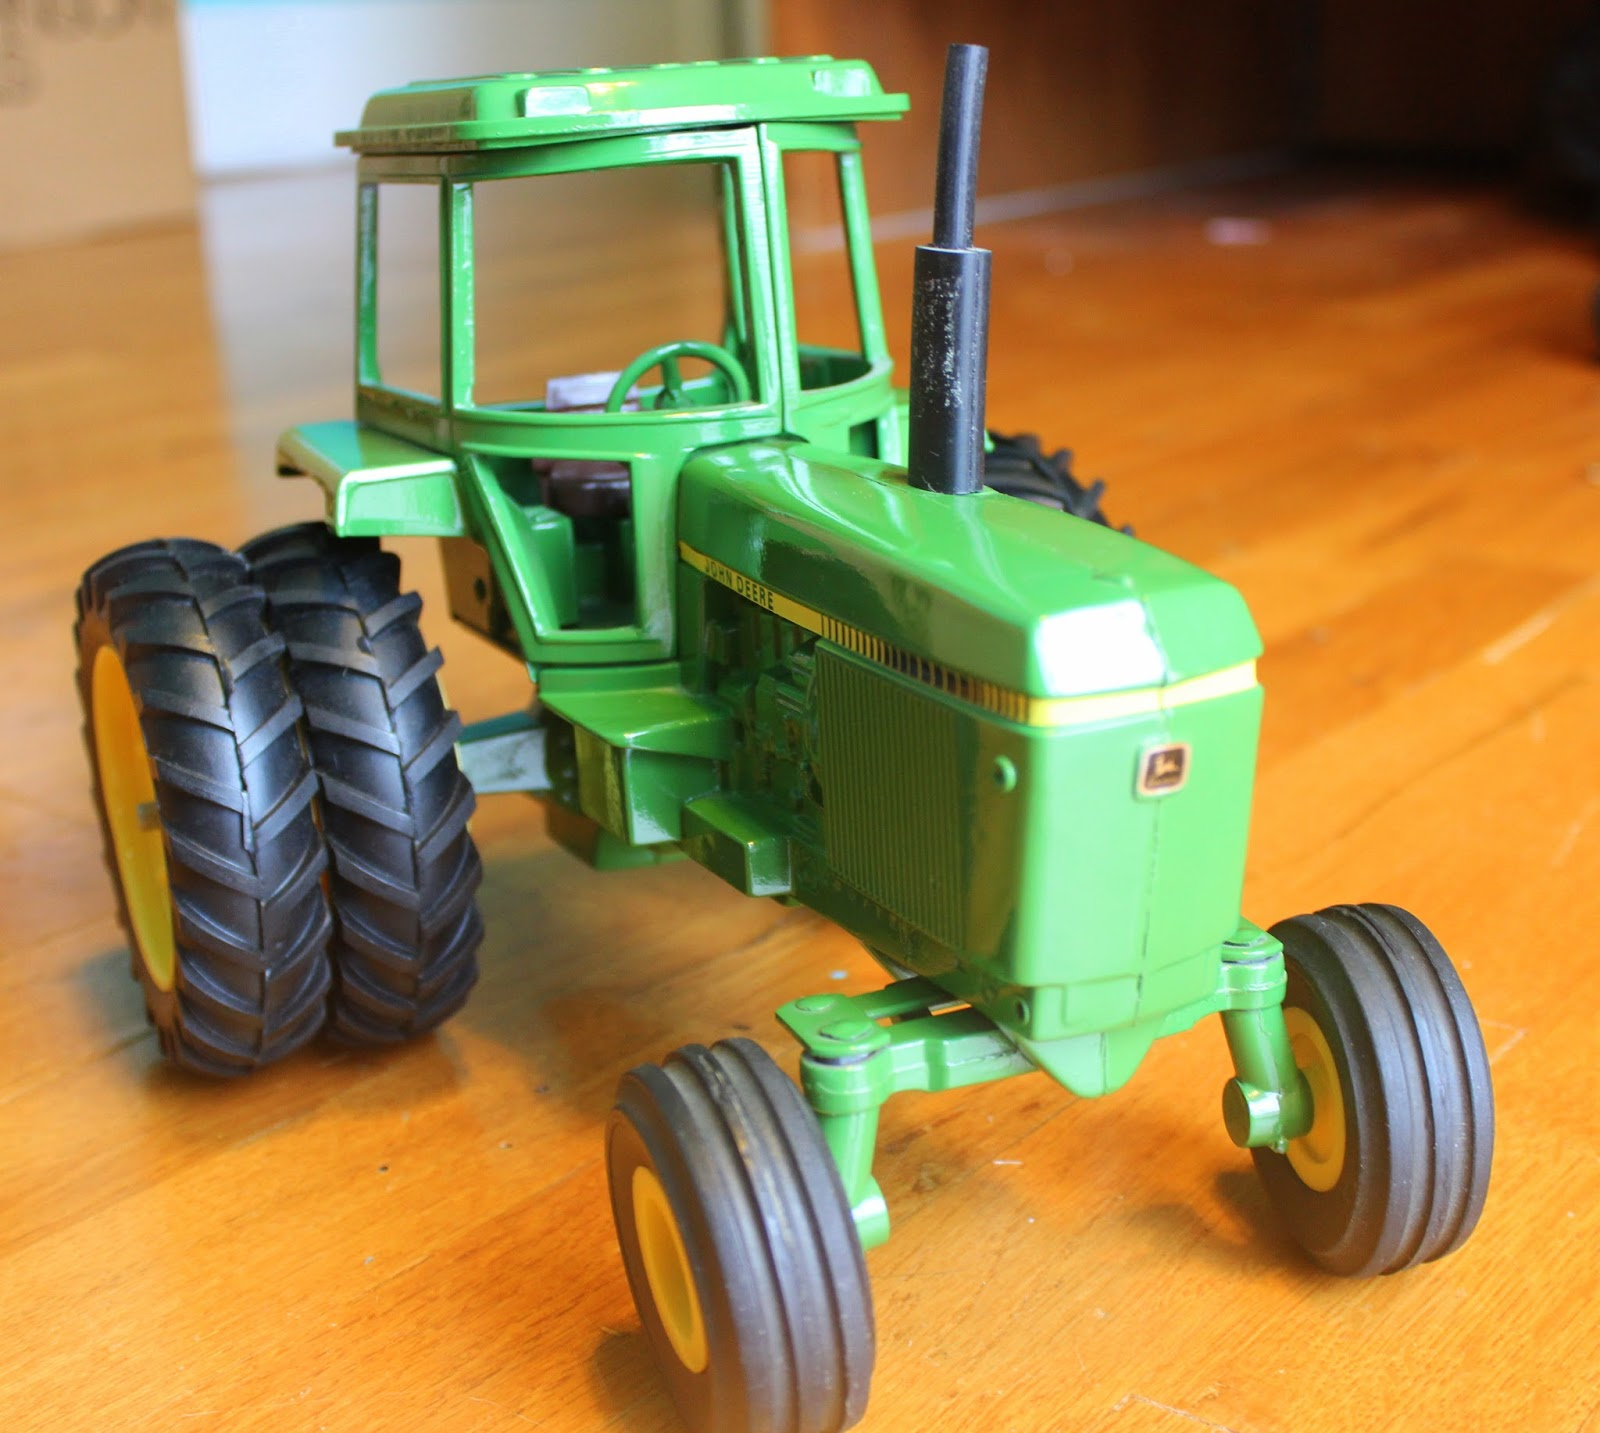 Spoelman Family Toy Tractor Collection John Deere 4440 Iron Horse